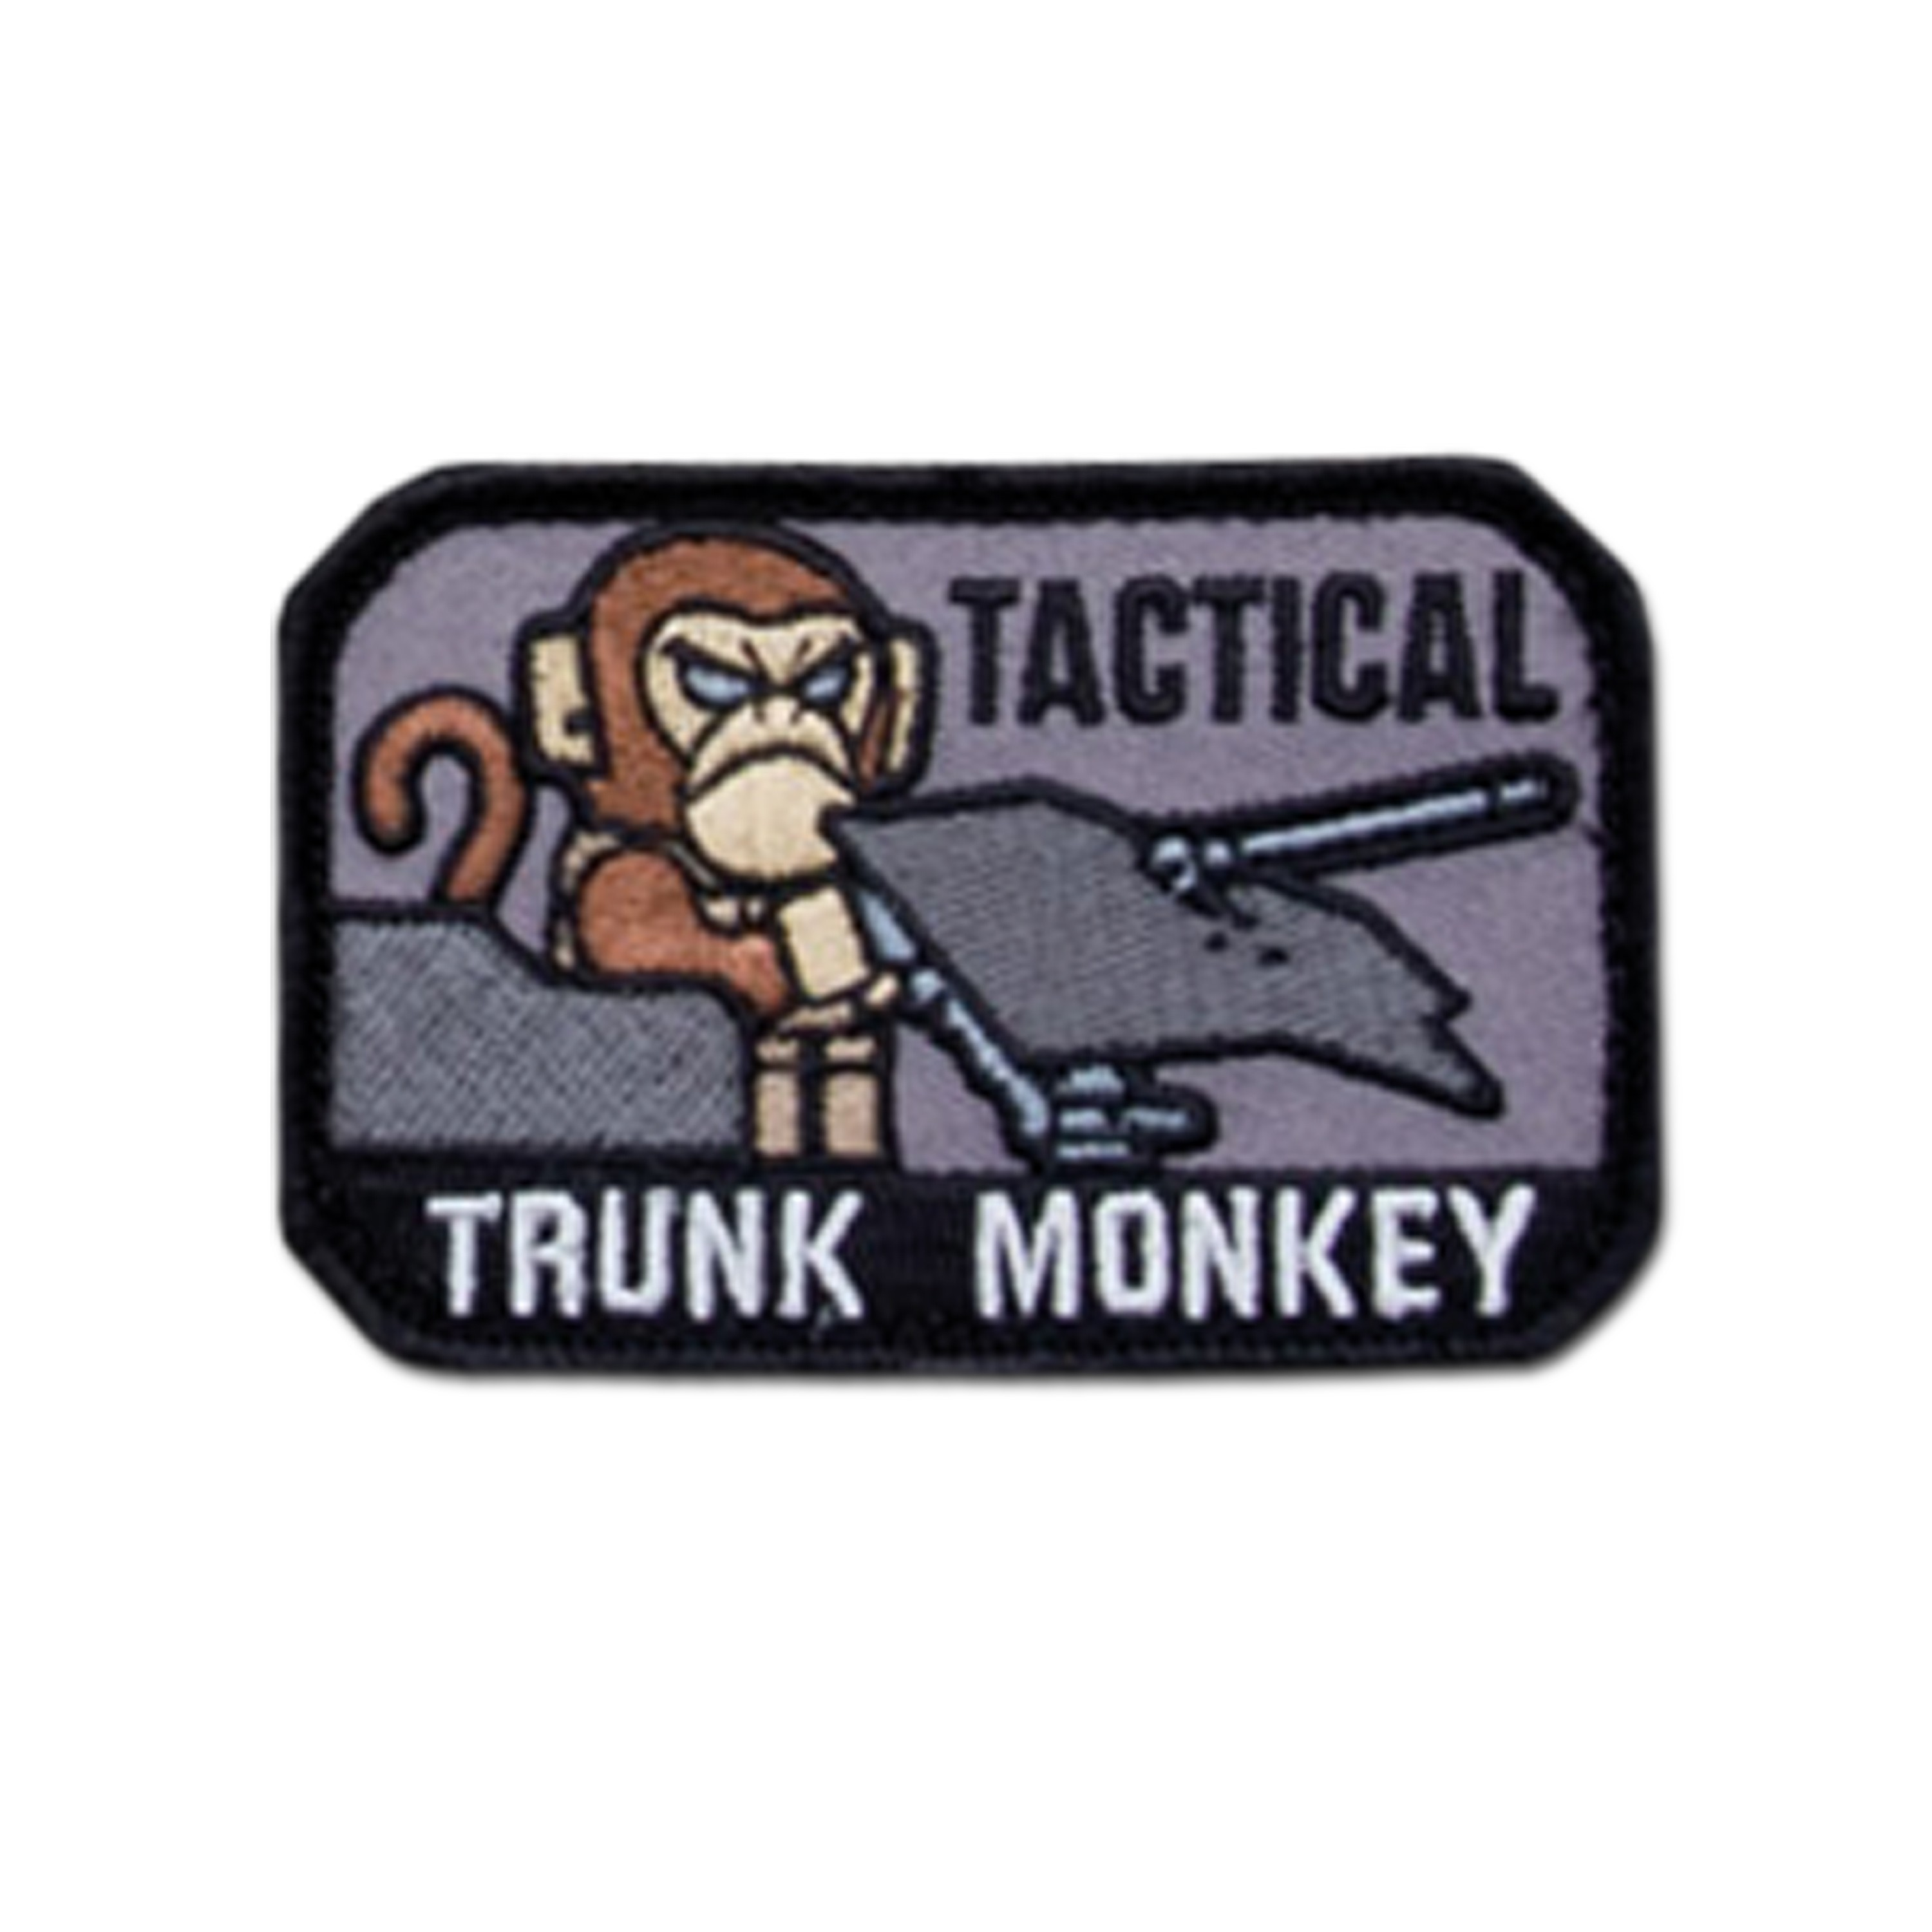 MilSpecMonkey Patch Tactical Trunk Monkey swat